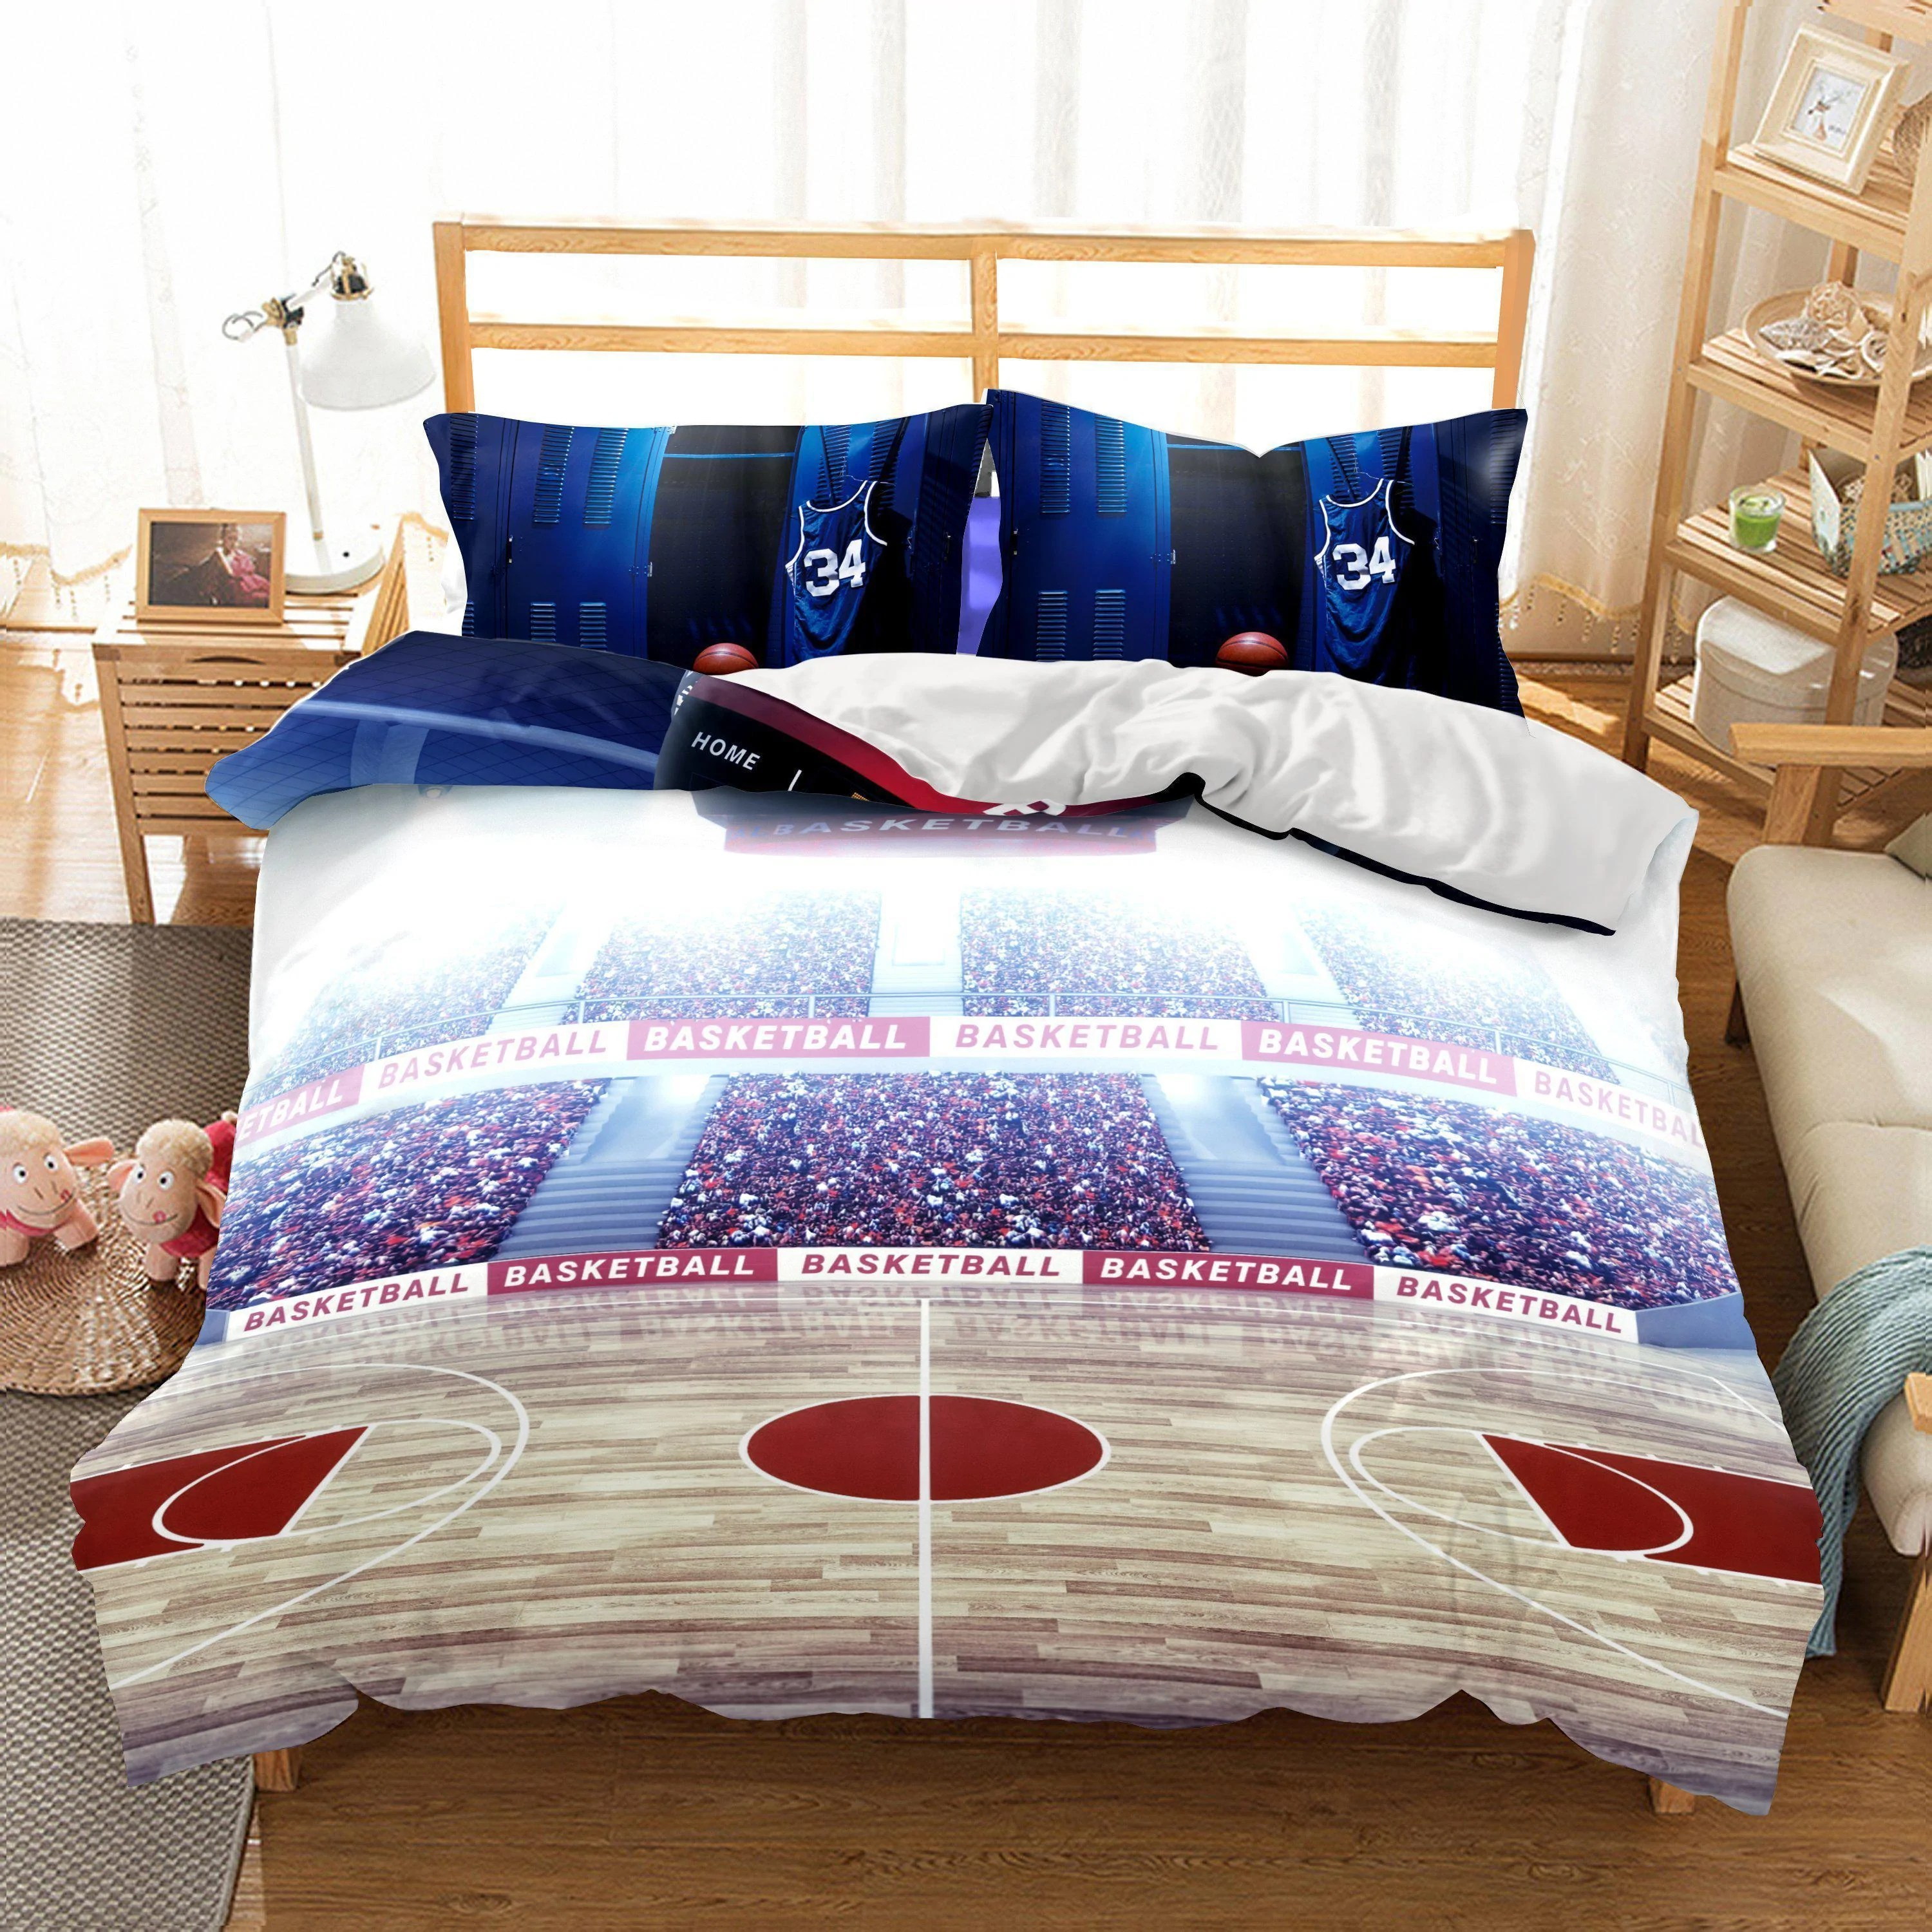 Wholesale Bedding 3d Basketball Court Printed Bedding Sets Mrkoalahome